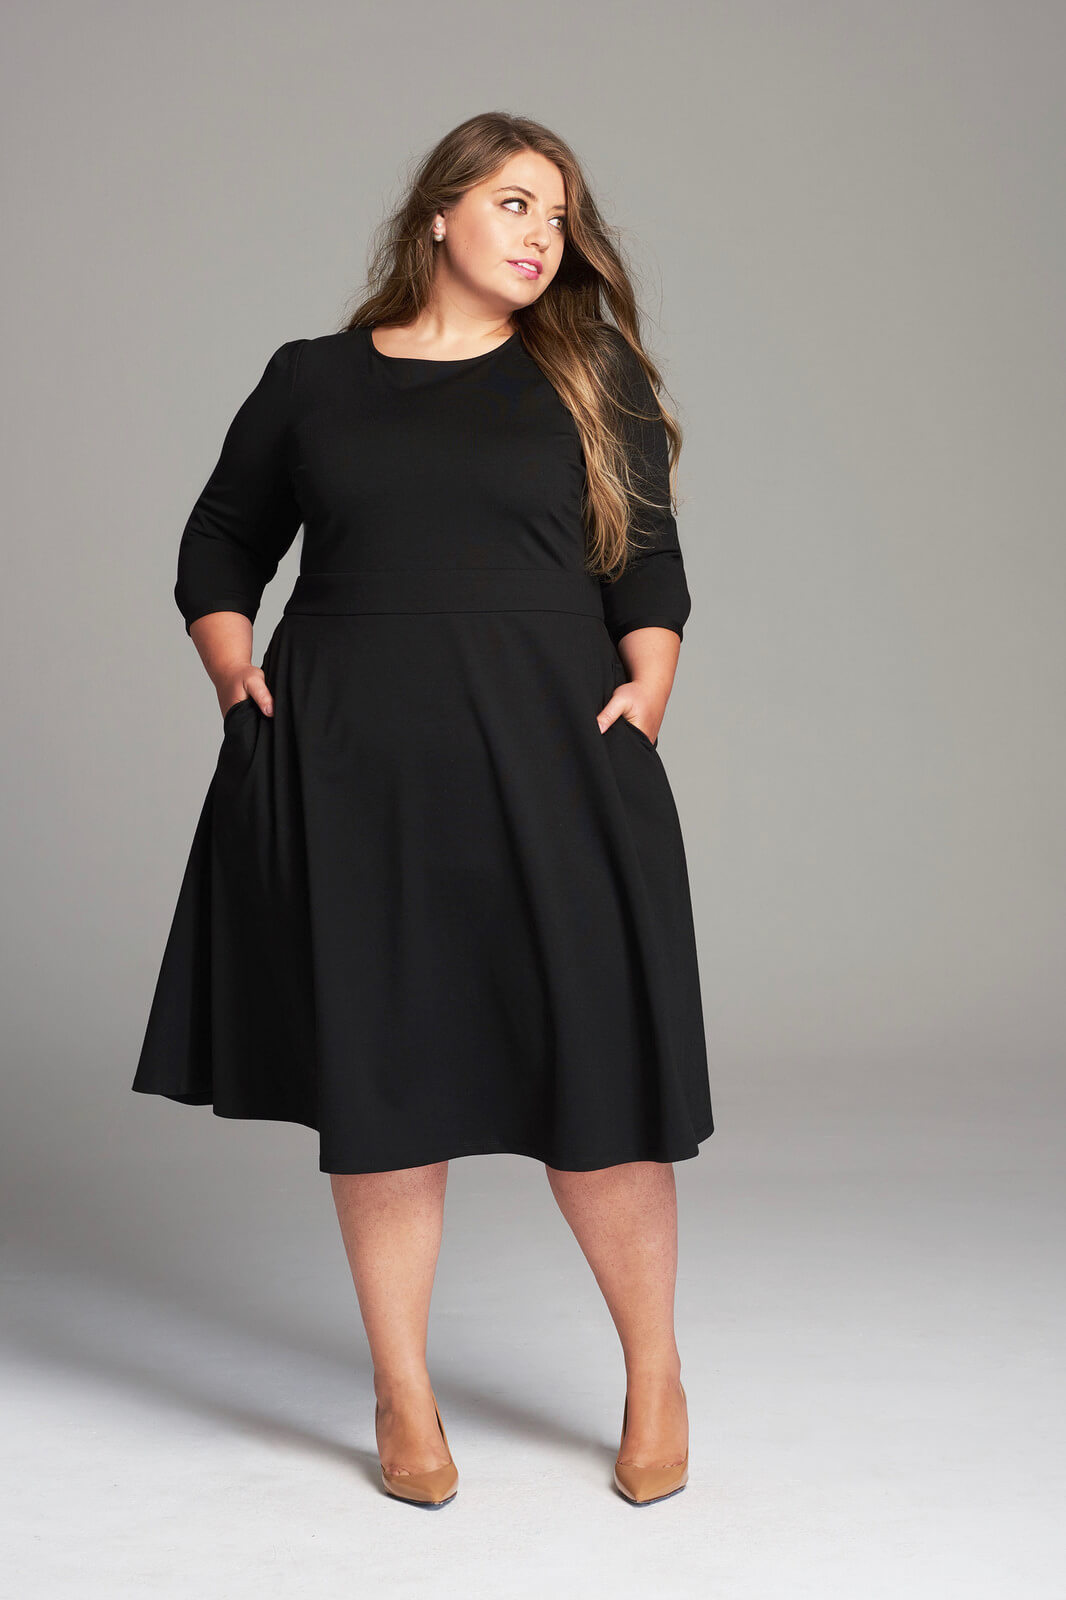 Girl With Curves Fall 2017 Little Black Dress